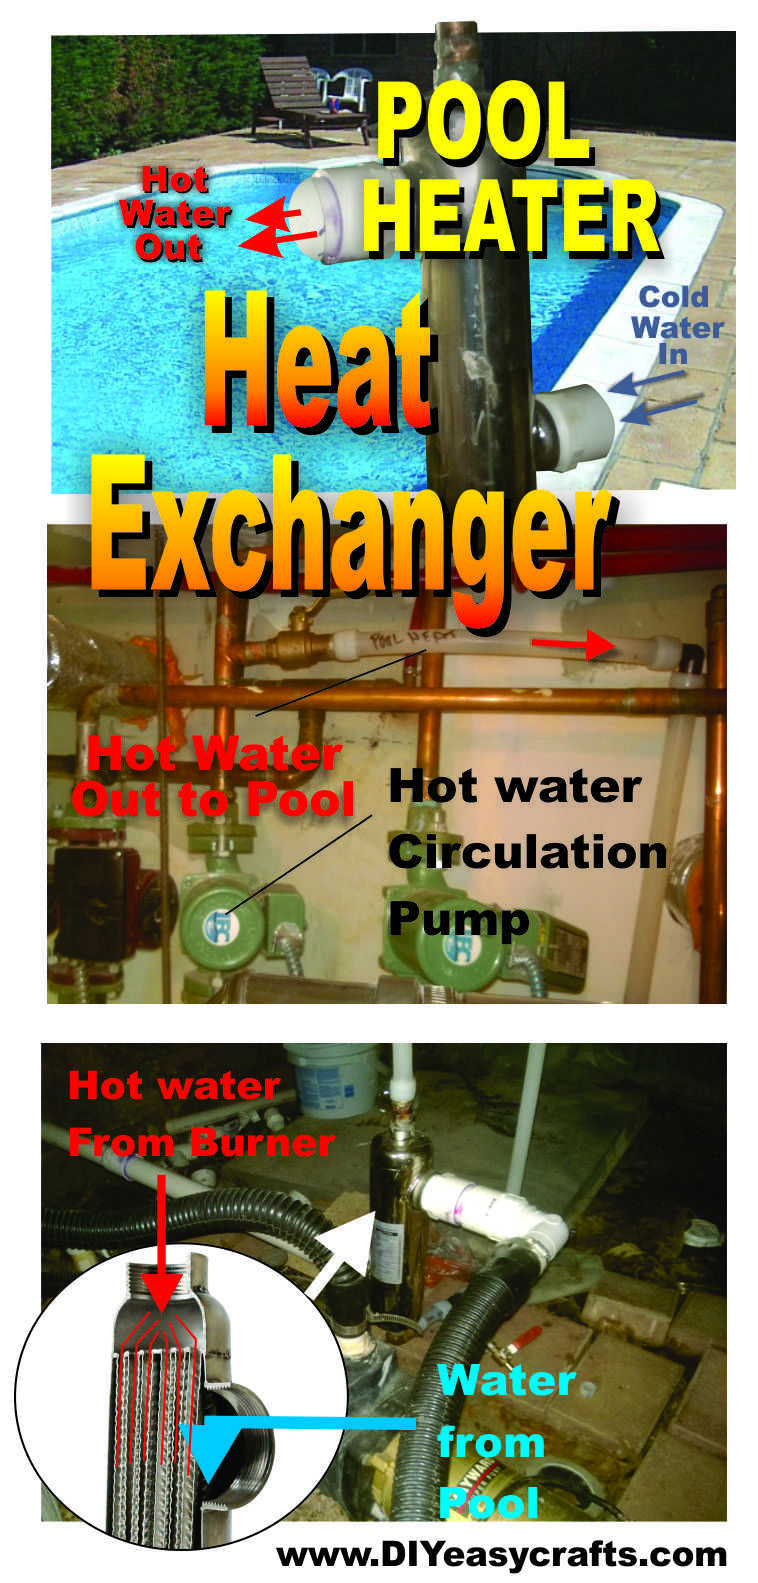 Heat Exchanger used for Pool Heater. This video takes a